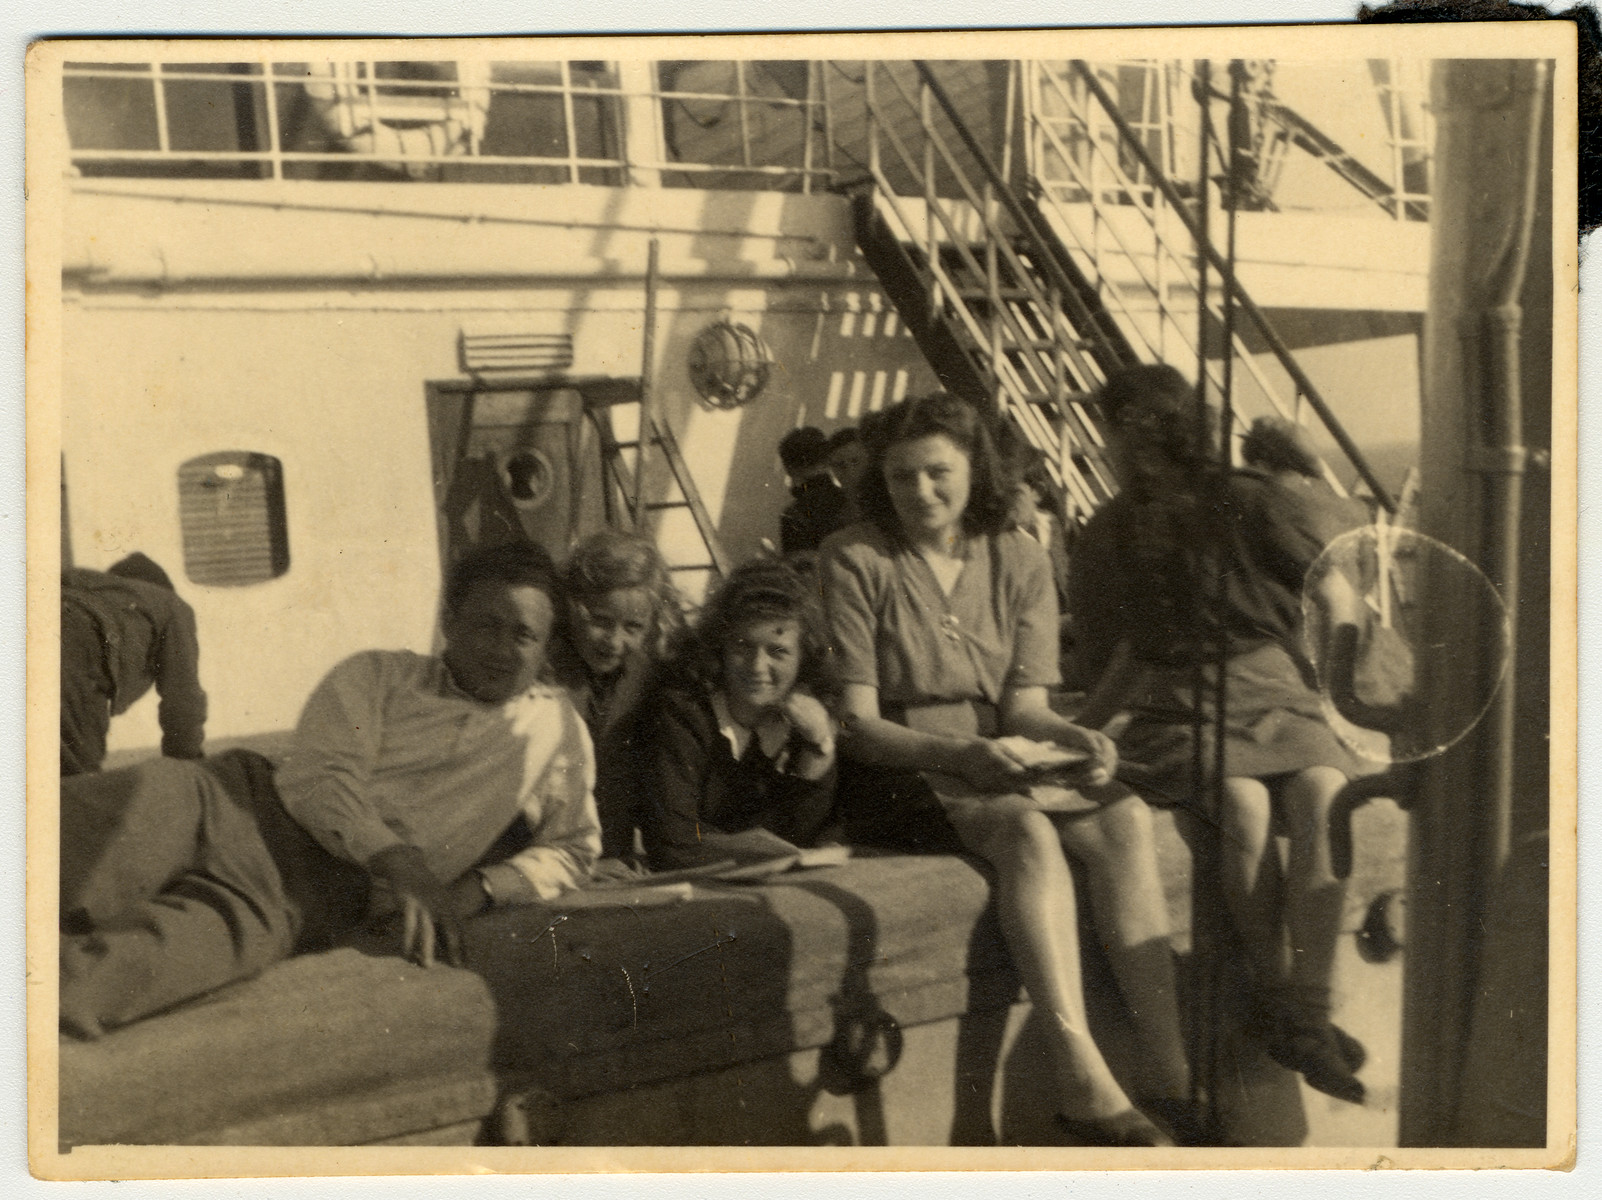 """Former passengers from the Exodus relax on board The Transylvania where they are immigrating """"legally"""" to Palestine with certificates provided by the Bricha.  Pictured in the center with a book is Sara Wiener."""